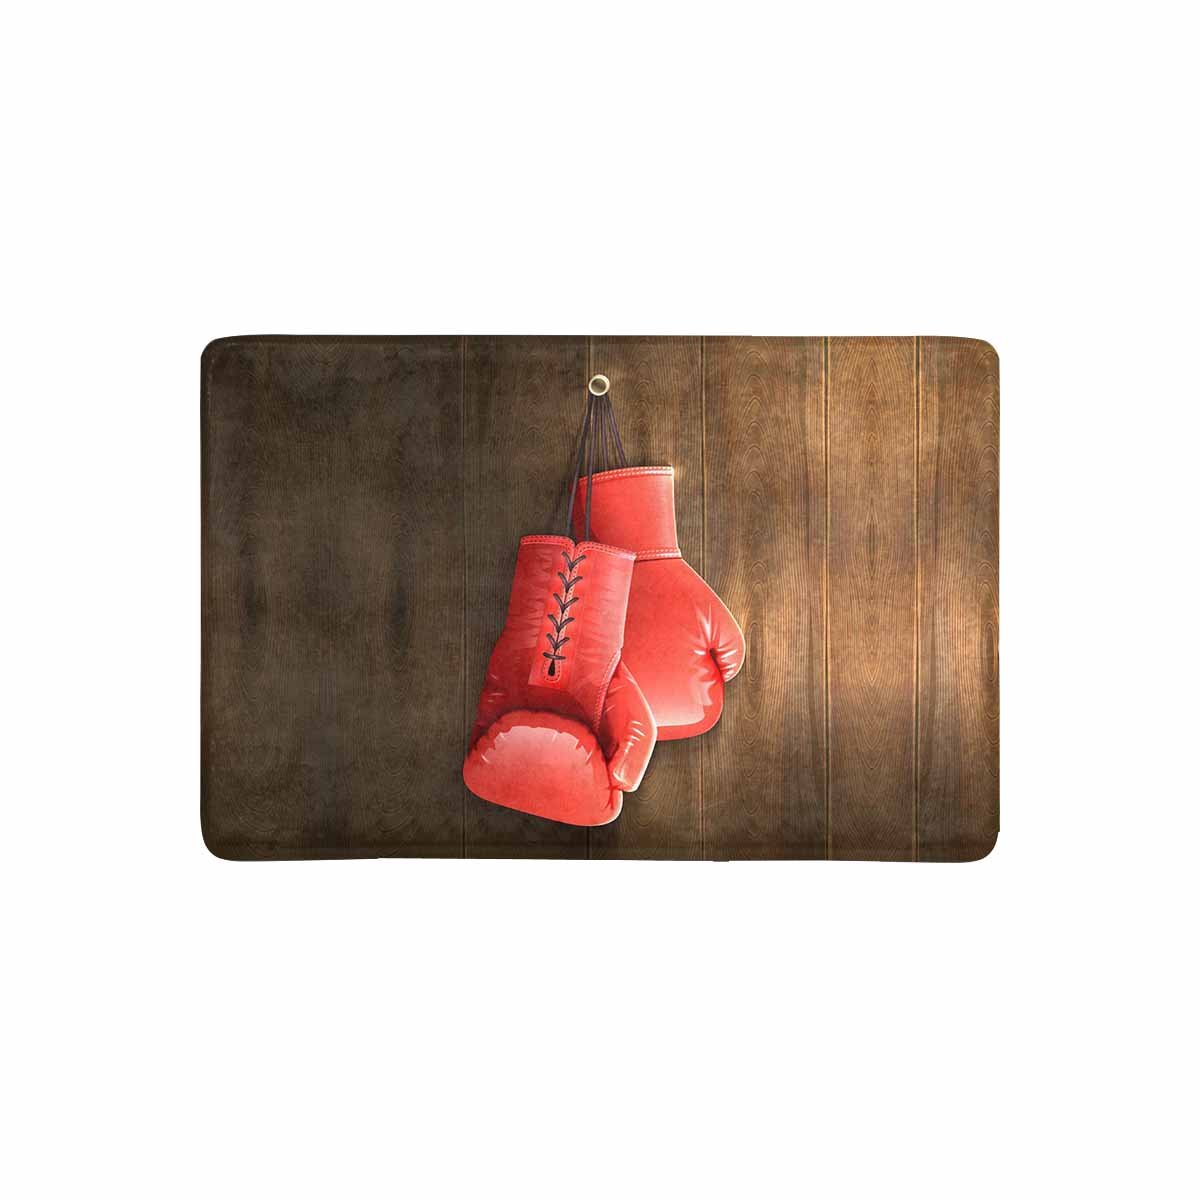 InterestPrint Red Realistic Boxing Gloves on Wooden Wall Doormat Non Slip Indoor/Outdoor Floor Mat Home Decor, Entrance Rug Rubber Backing 23.6''(L) x 15.7''(W)